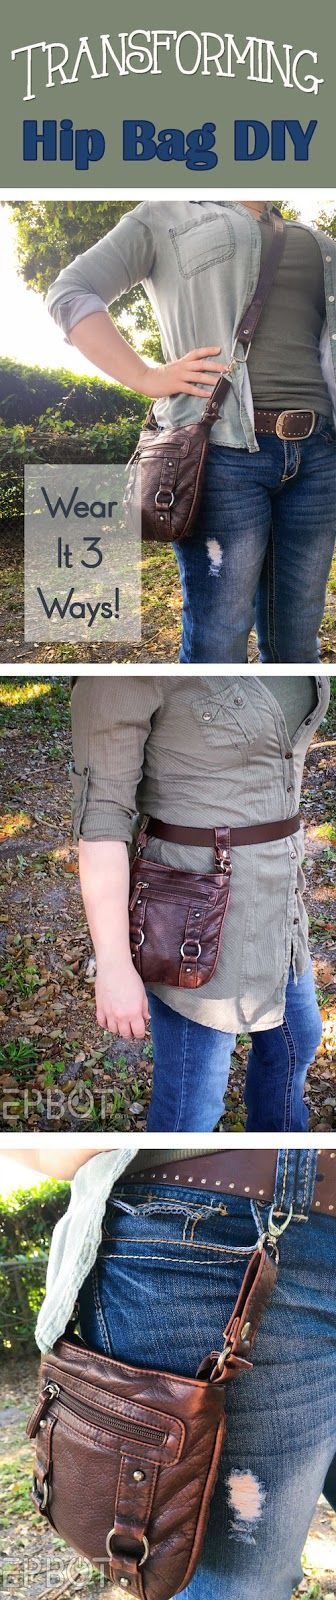 EPBOT: DIY Transforming Purse Is The Last Bag You'll Ever Need